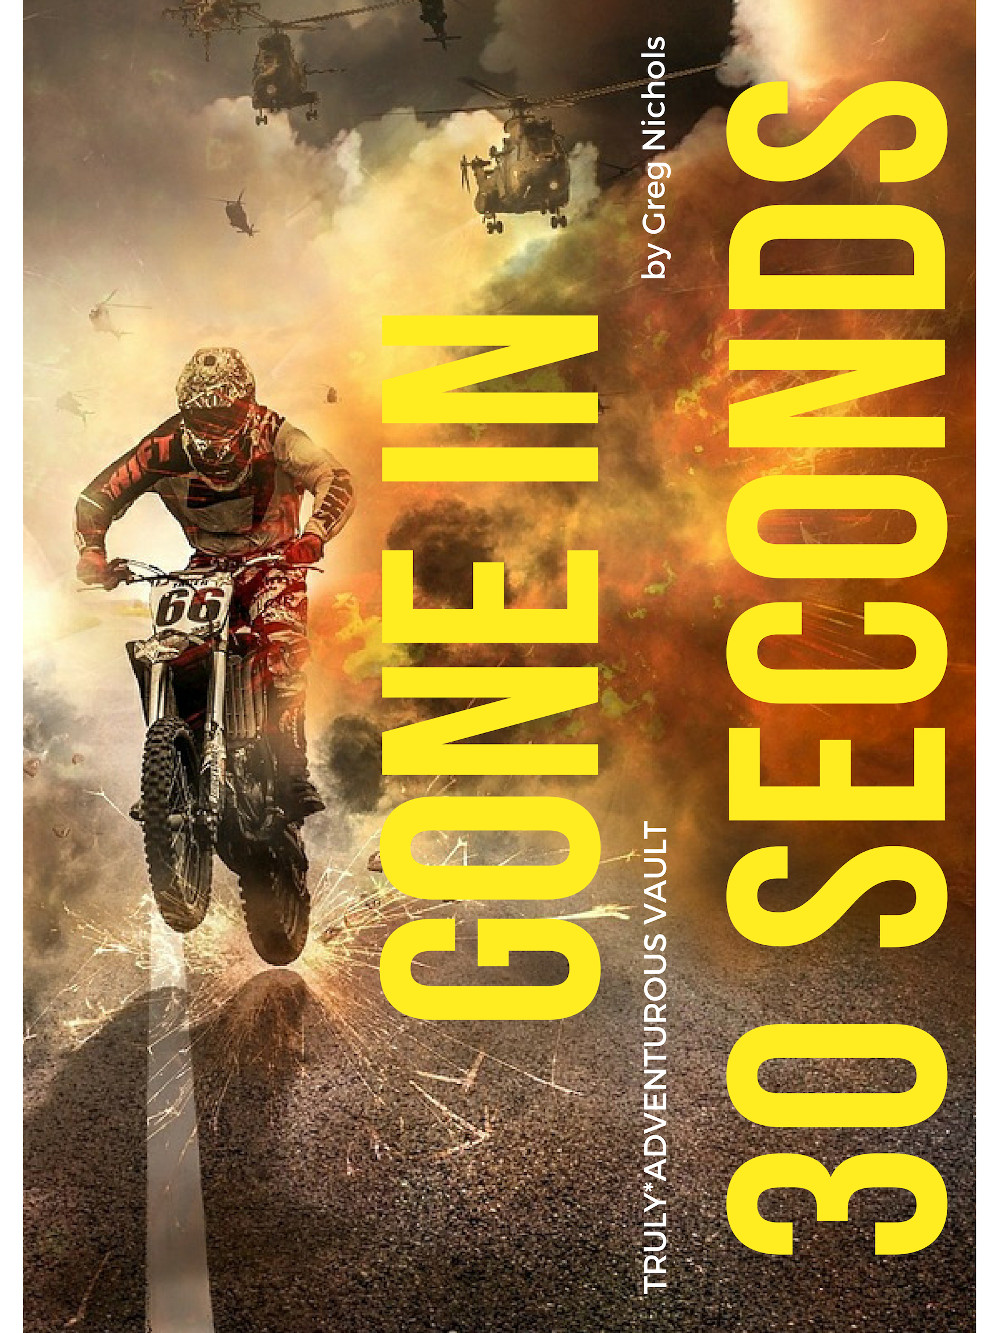 Gone in 30 seconds poster3sm.jpg